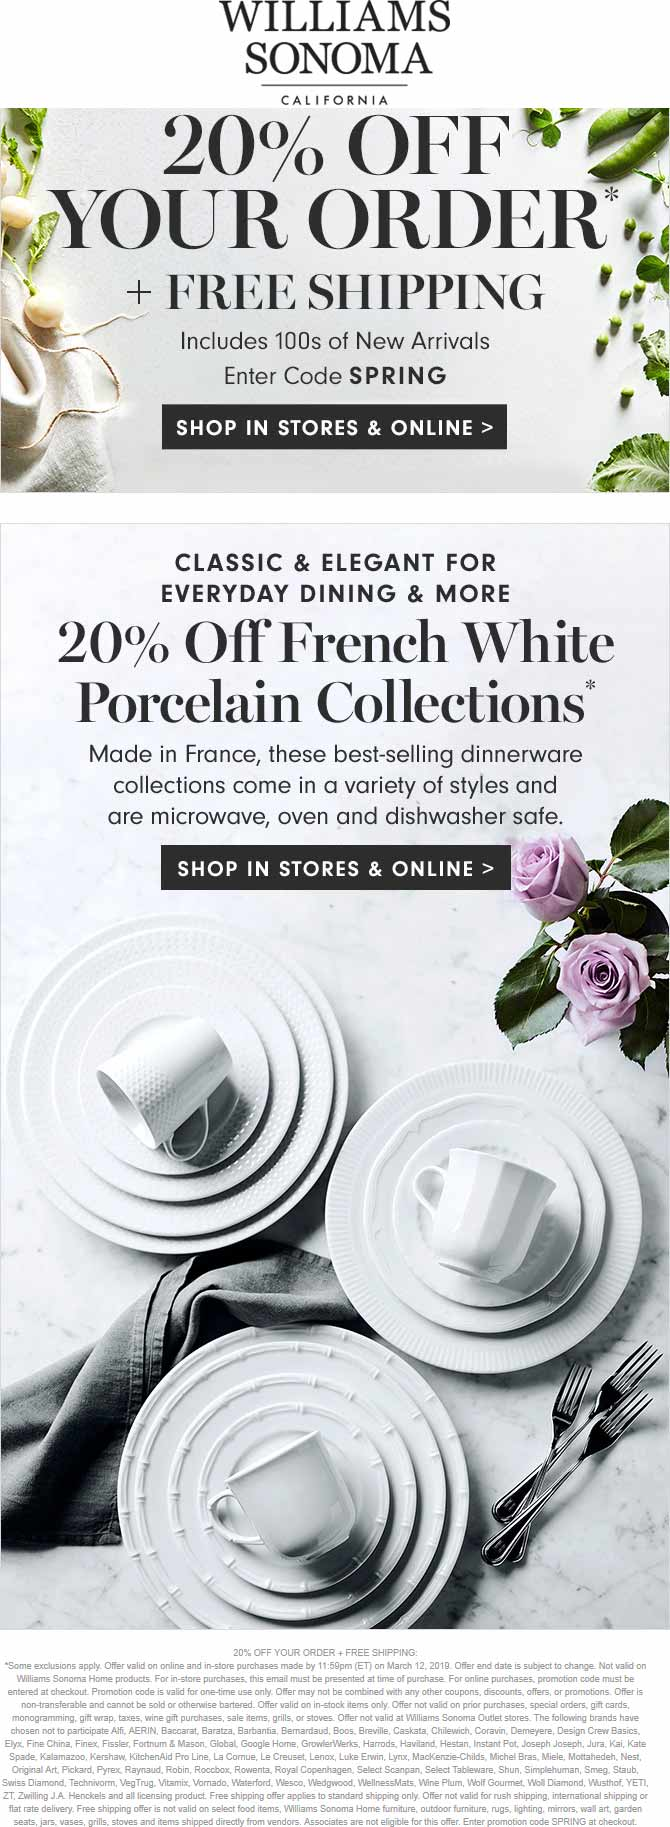 Williams Sonoma Coupon November 2019 20% off today at Williams Sonoma, ditto online